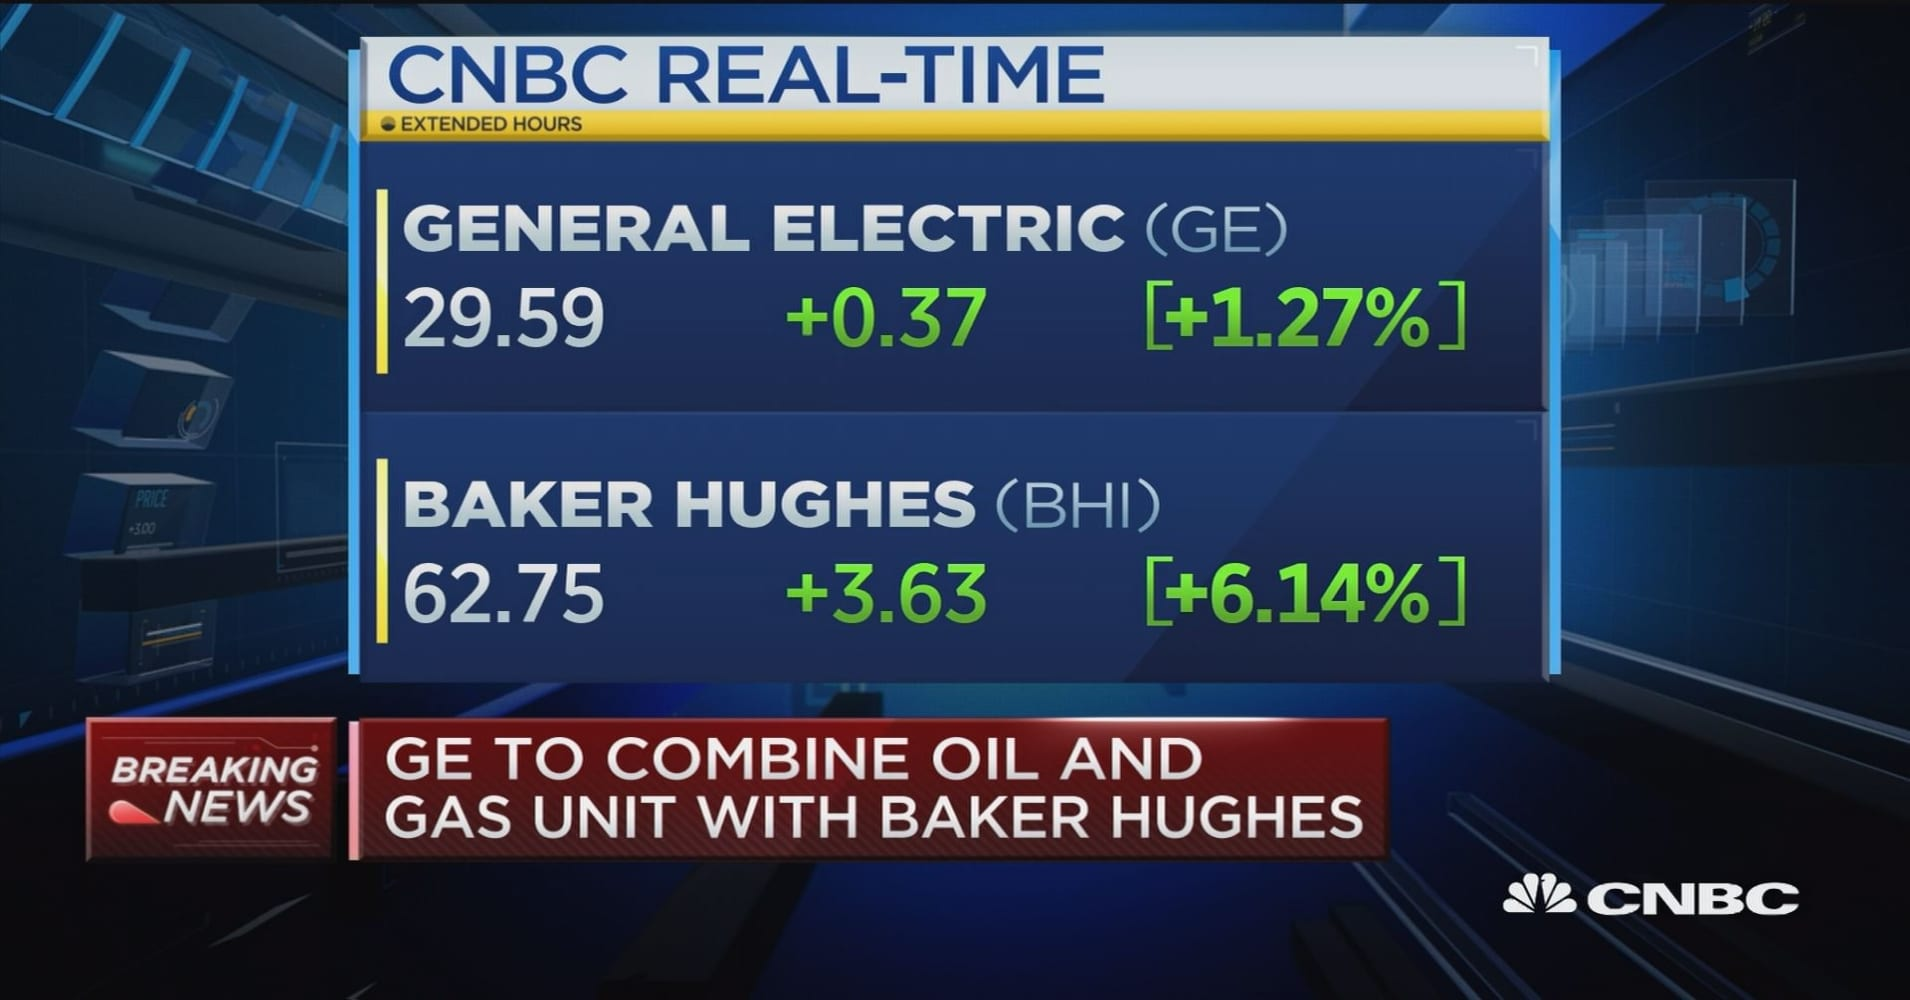 ge to combine oil and gas unit with baker hughes - General Electric